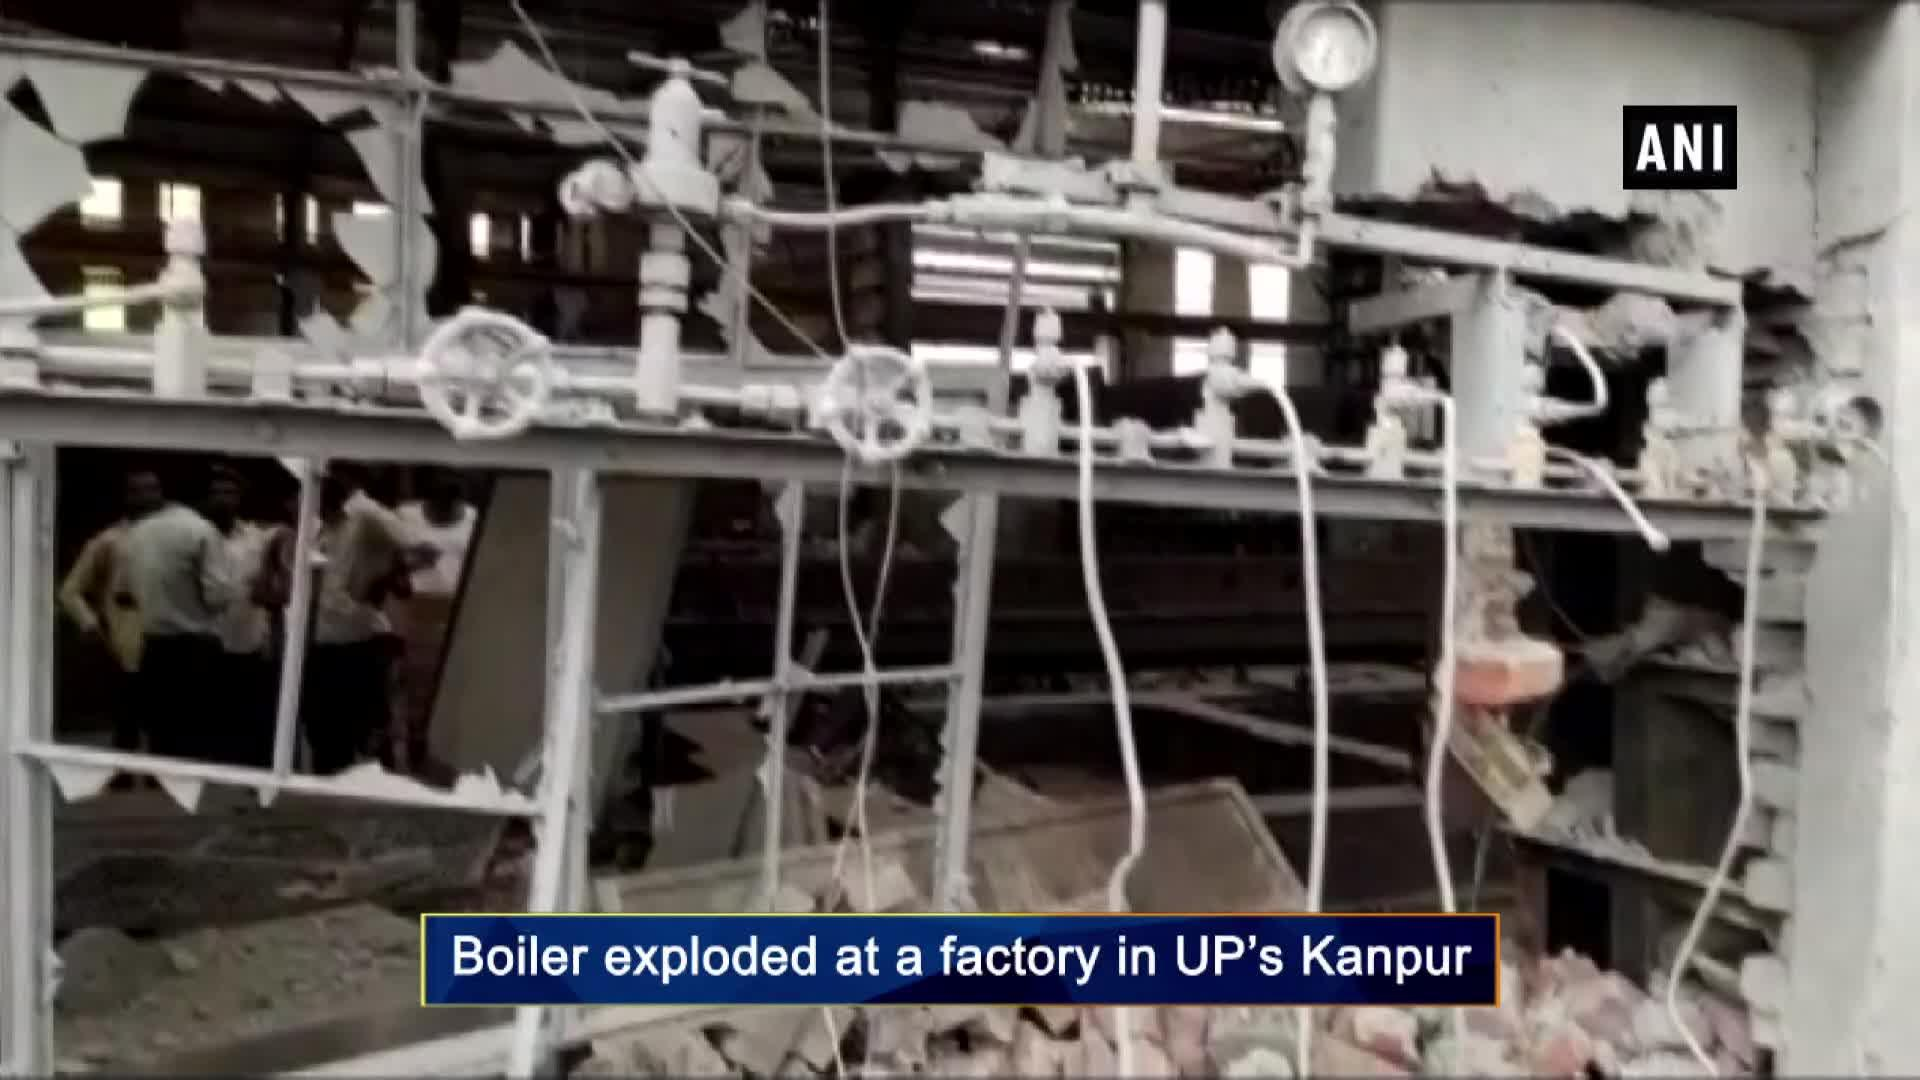 1 dead, 4 injured after boiler exploded at factory in UP's Kanpur - Yahoo India News